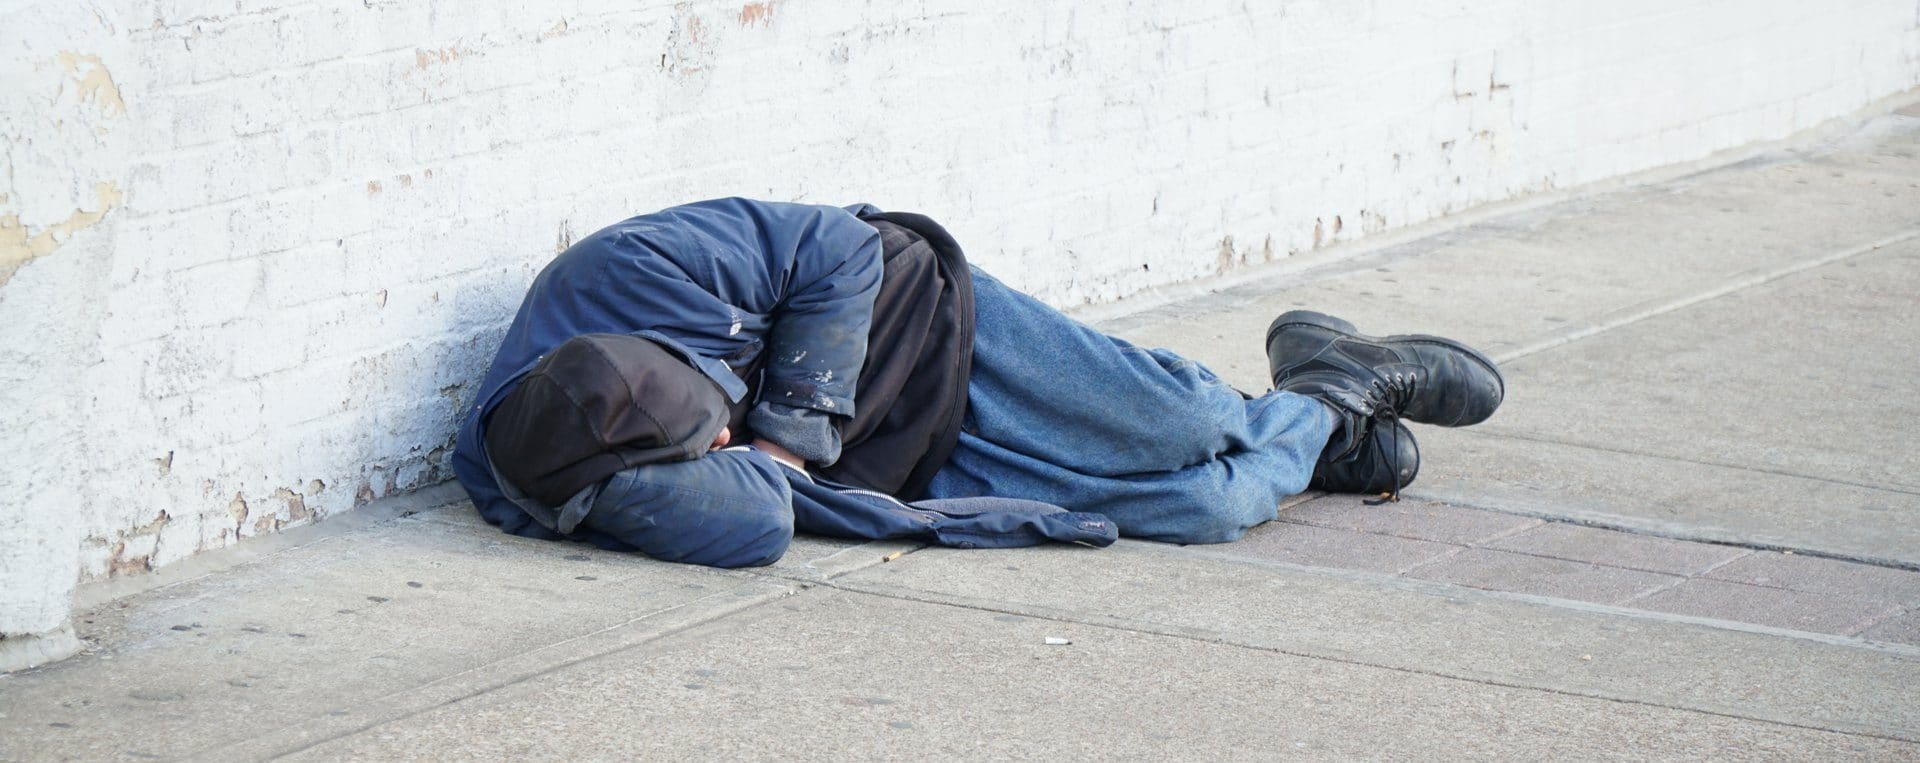 Homeless person sleeping on the street during COVID 19 outbreak